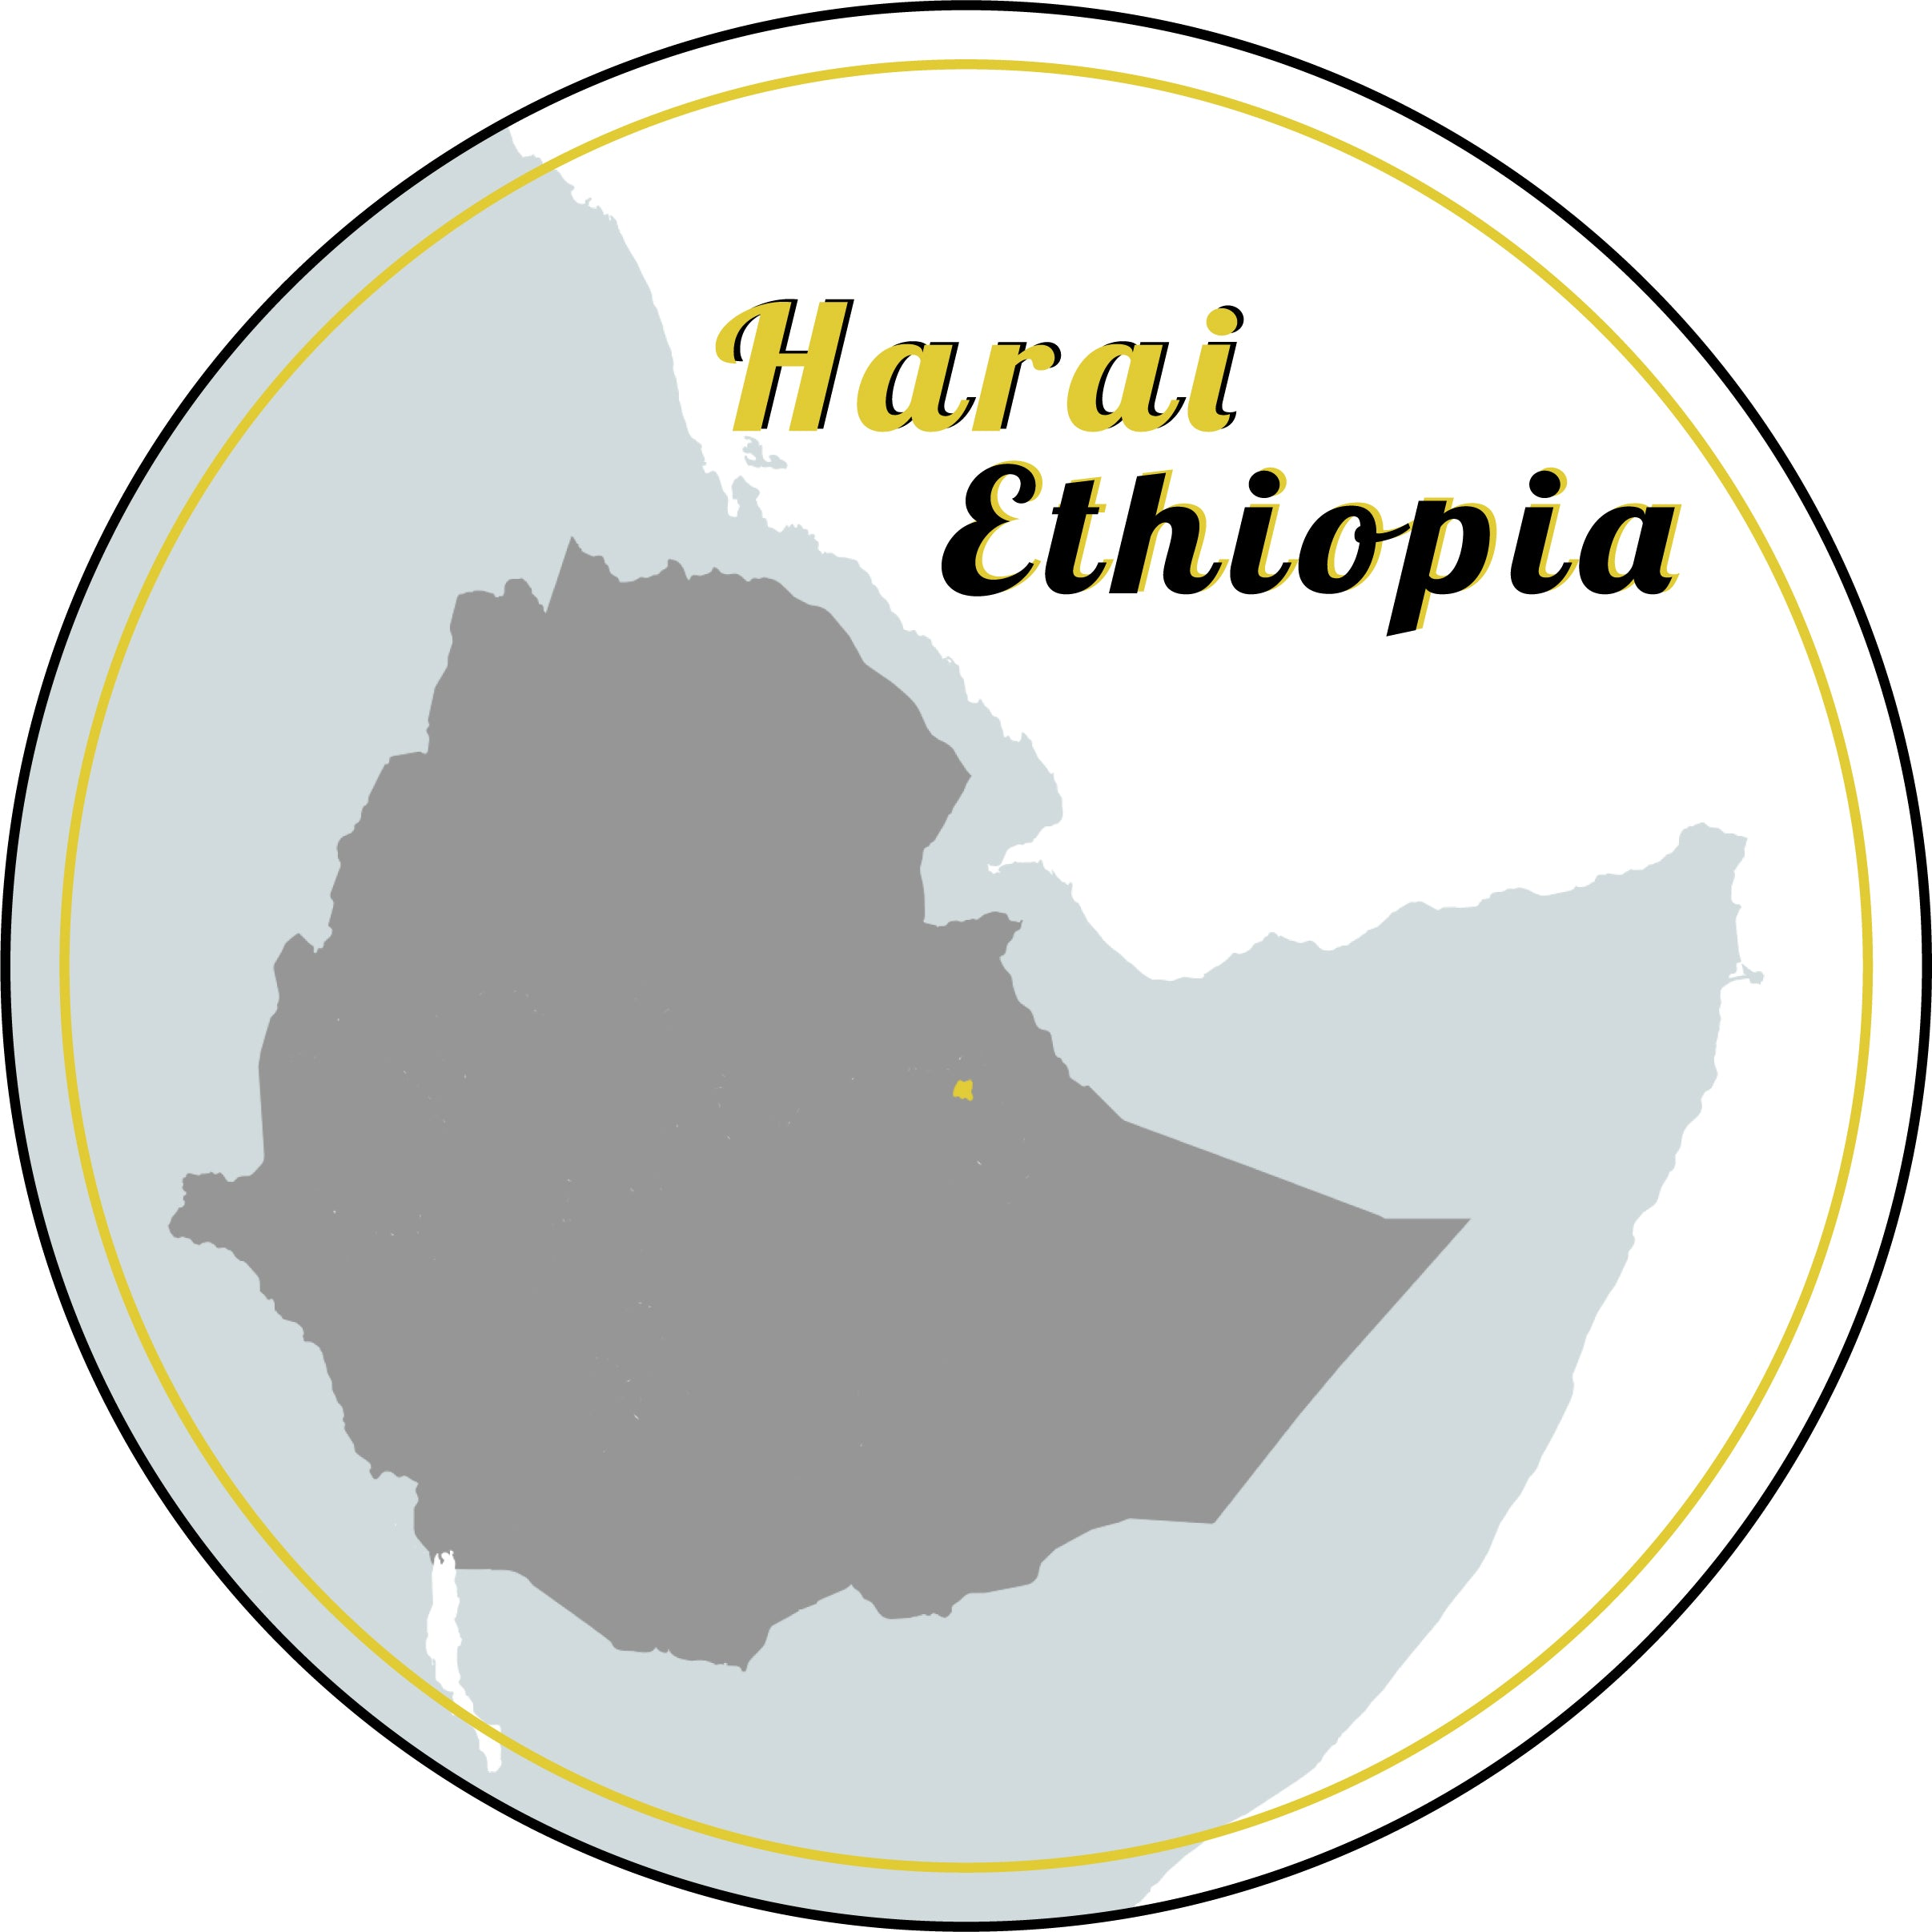 Goldilocks varietal map: Harari, Ethiopia